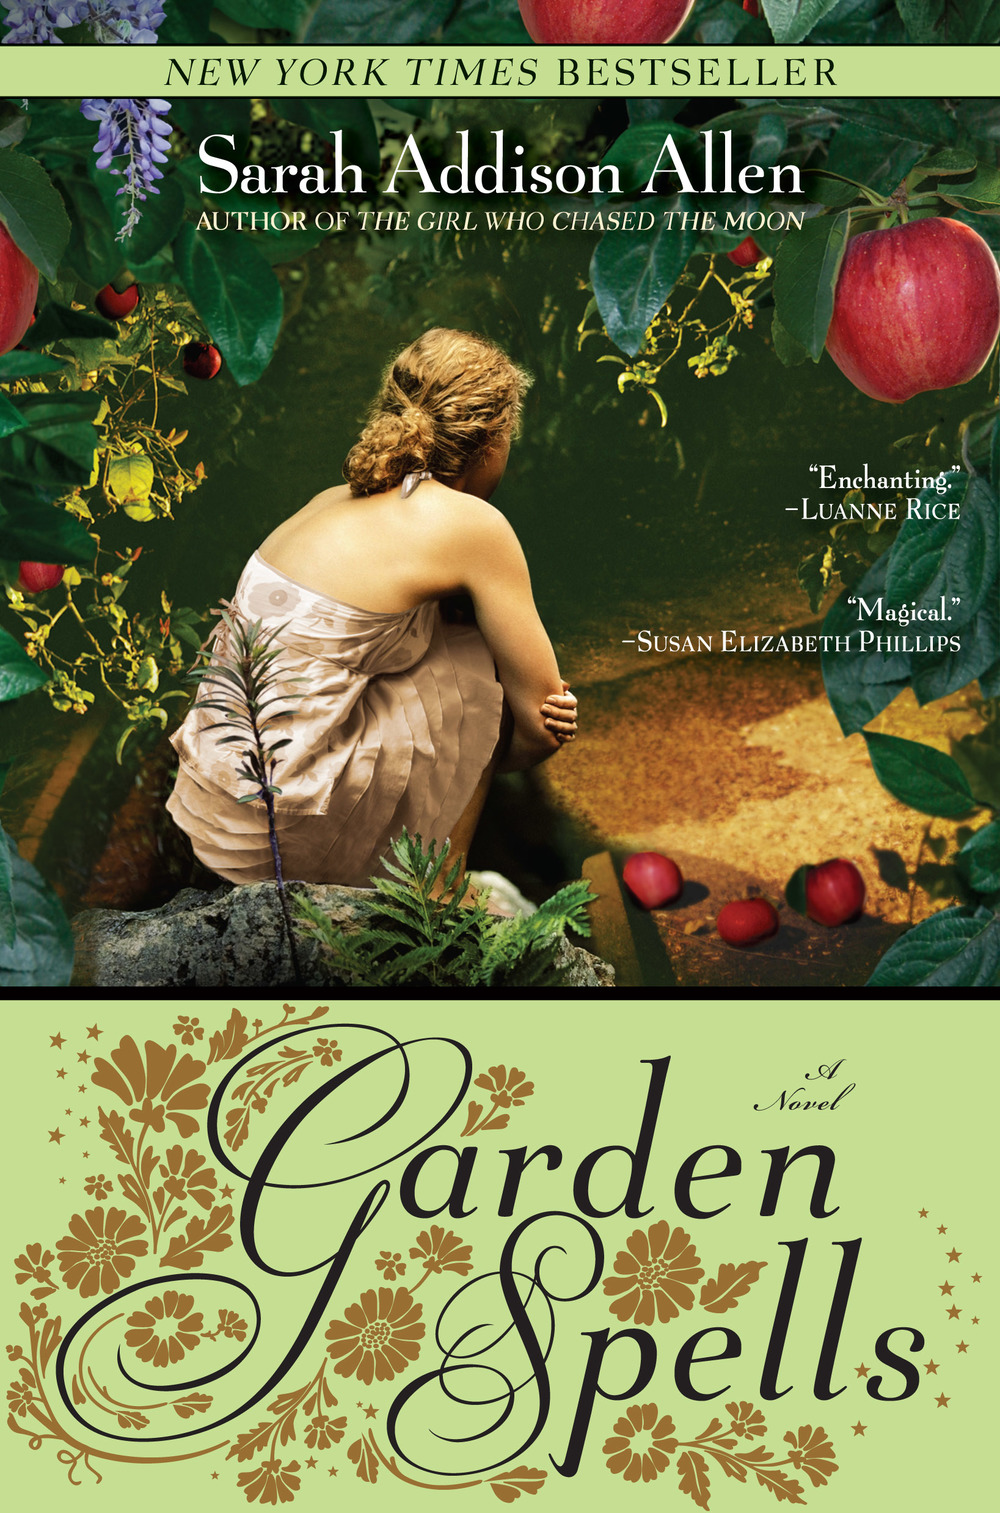 Garden Spells by Sarah Addison Allen Amazon | Goodreads